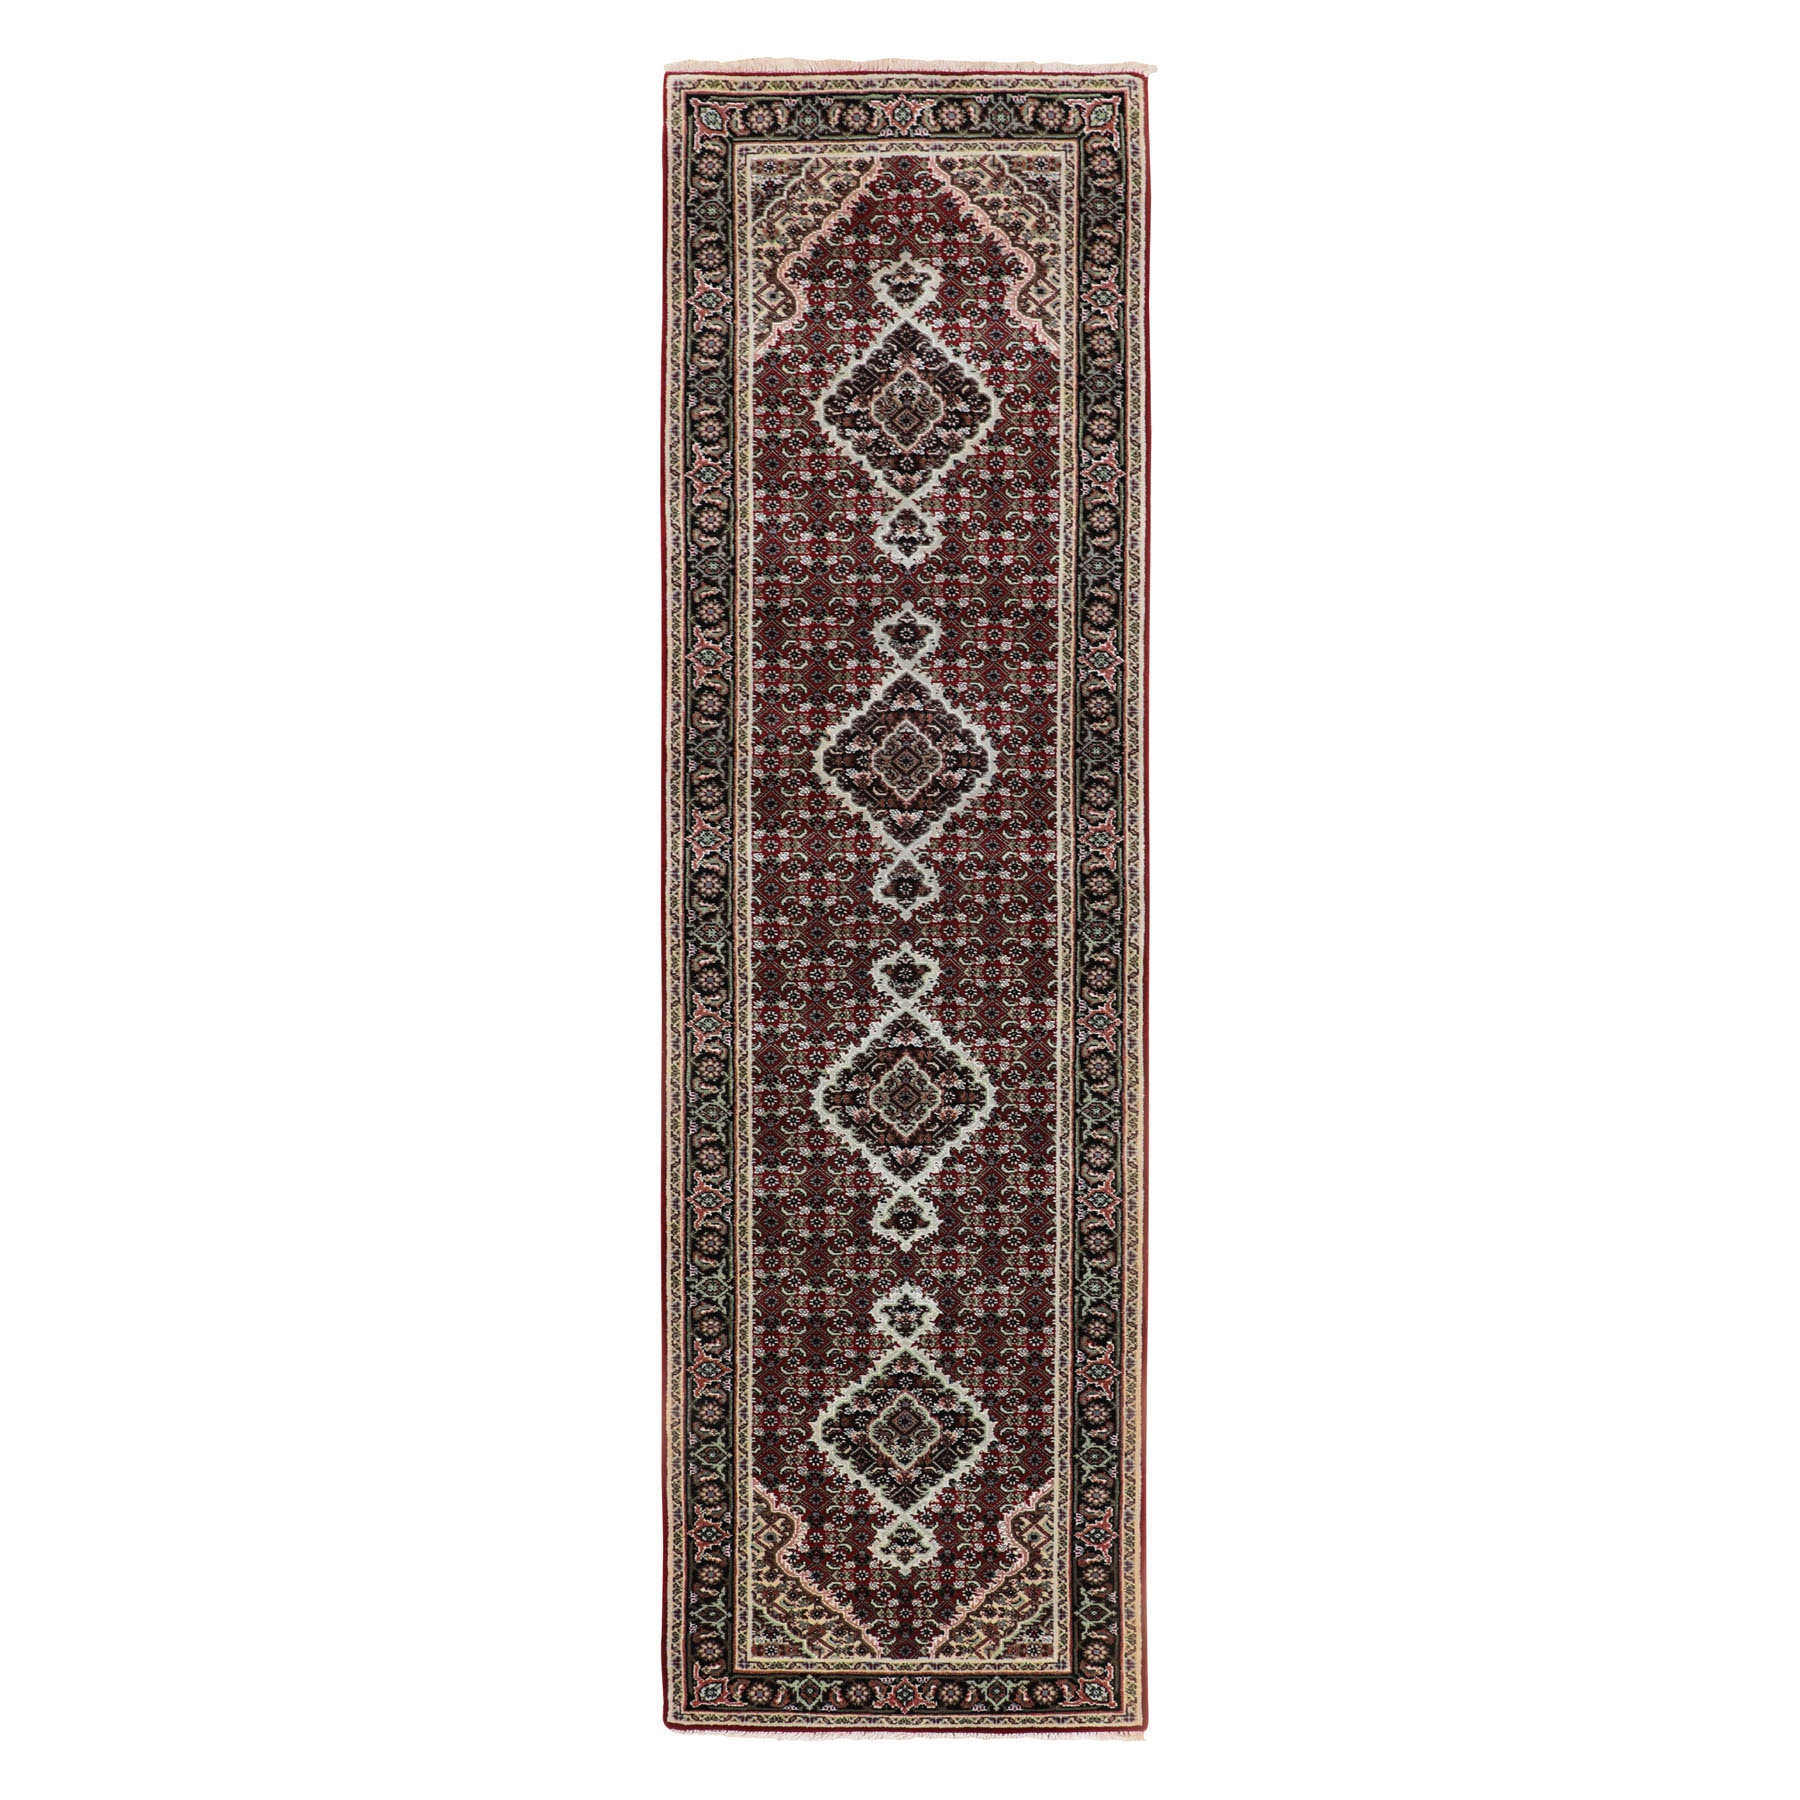 Pirniakan Collection Hand Knotted Red Rug No: 01116644